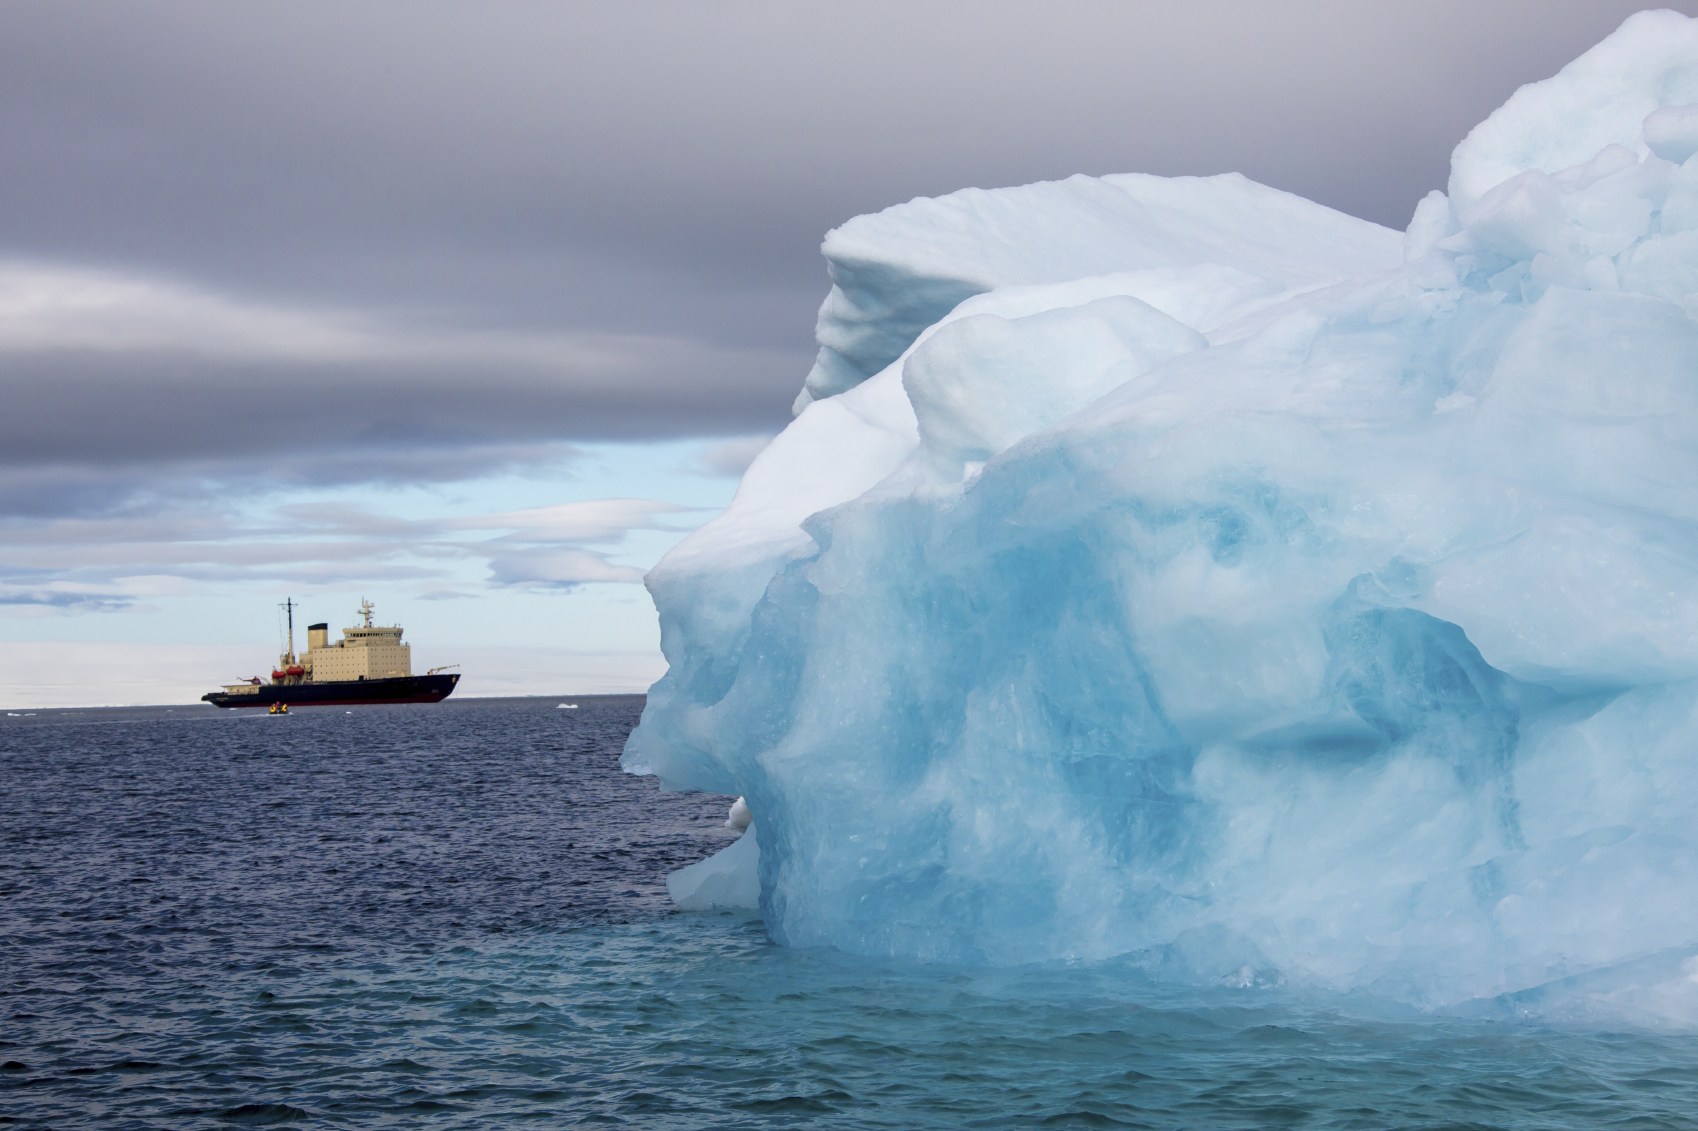 The Arctic in 2045: a long-term vision (WP1453)